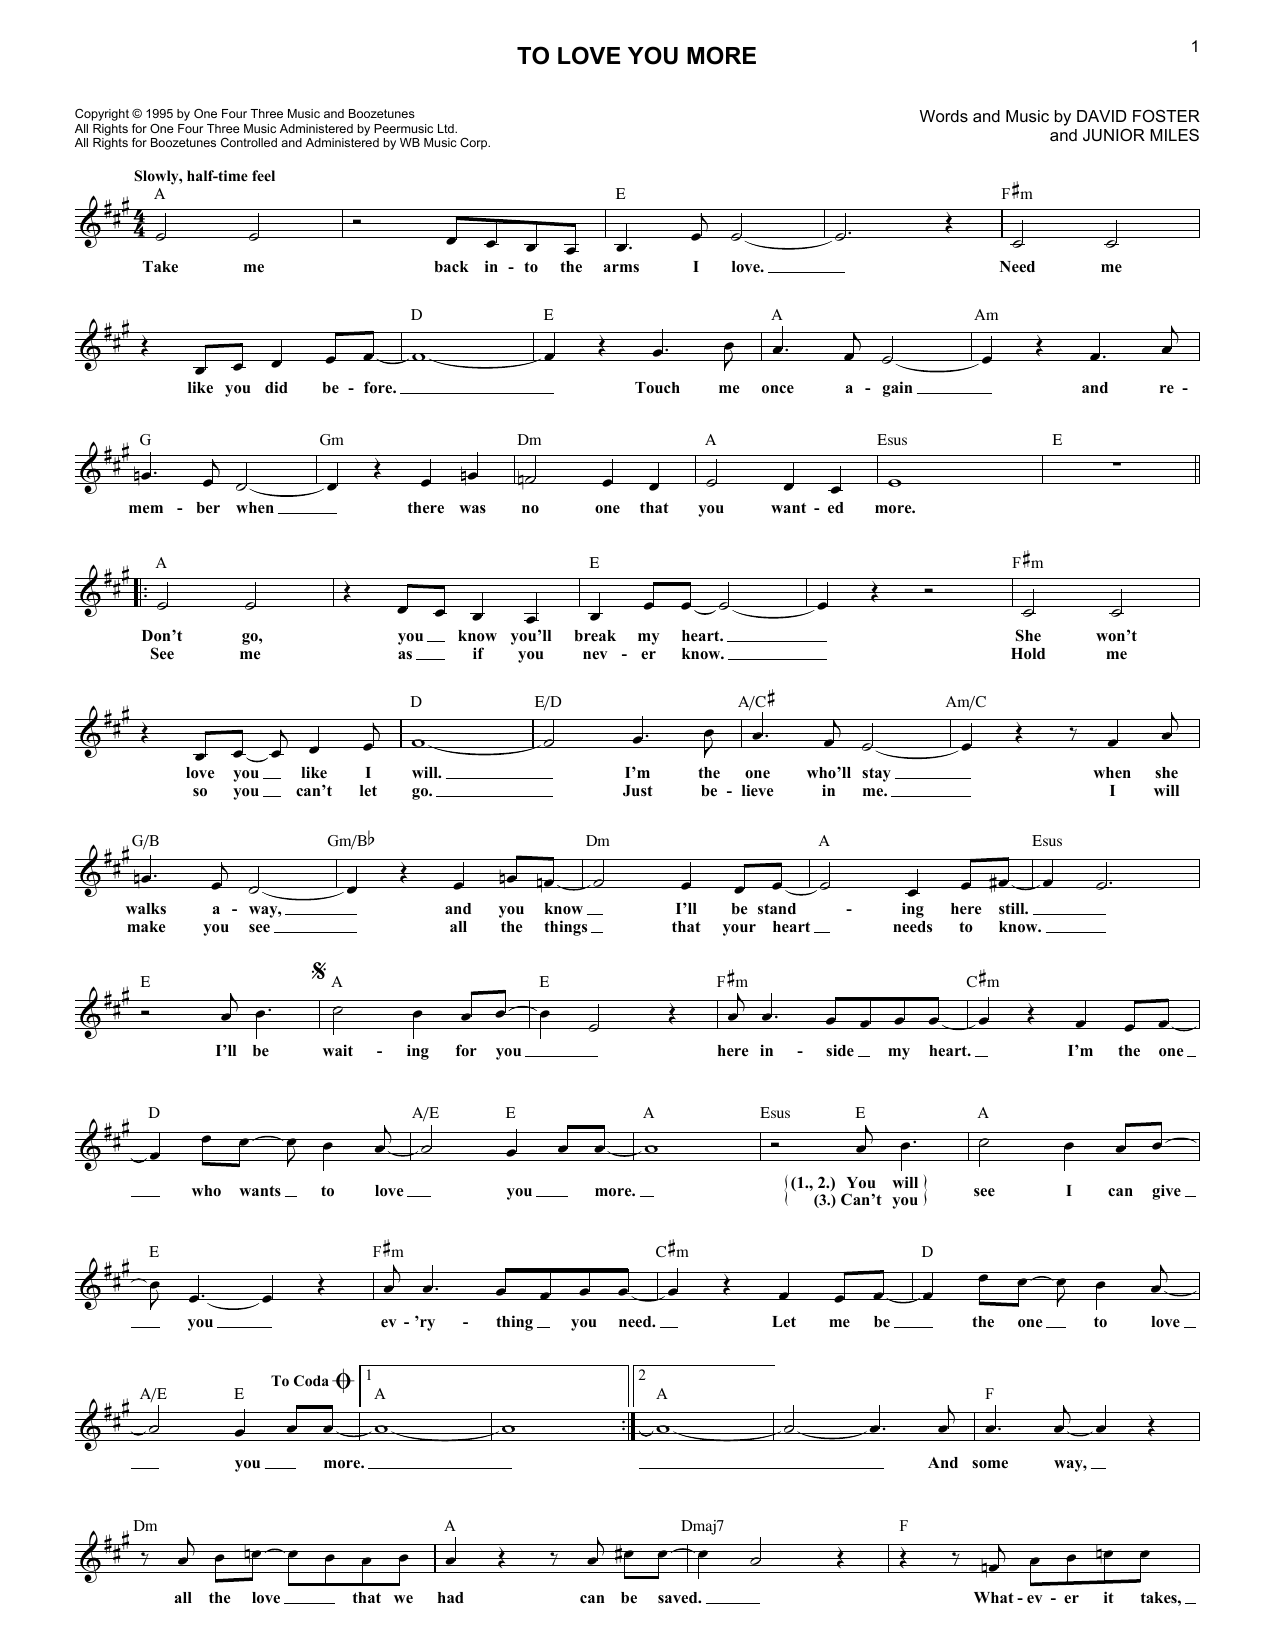 Celine Dion To Love You More sheet music notes and chords